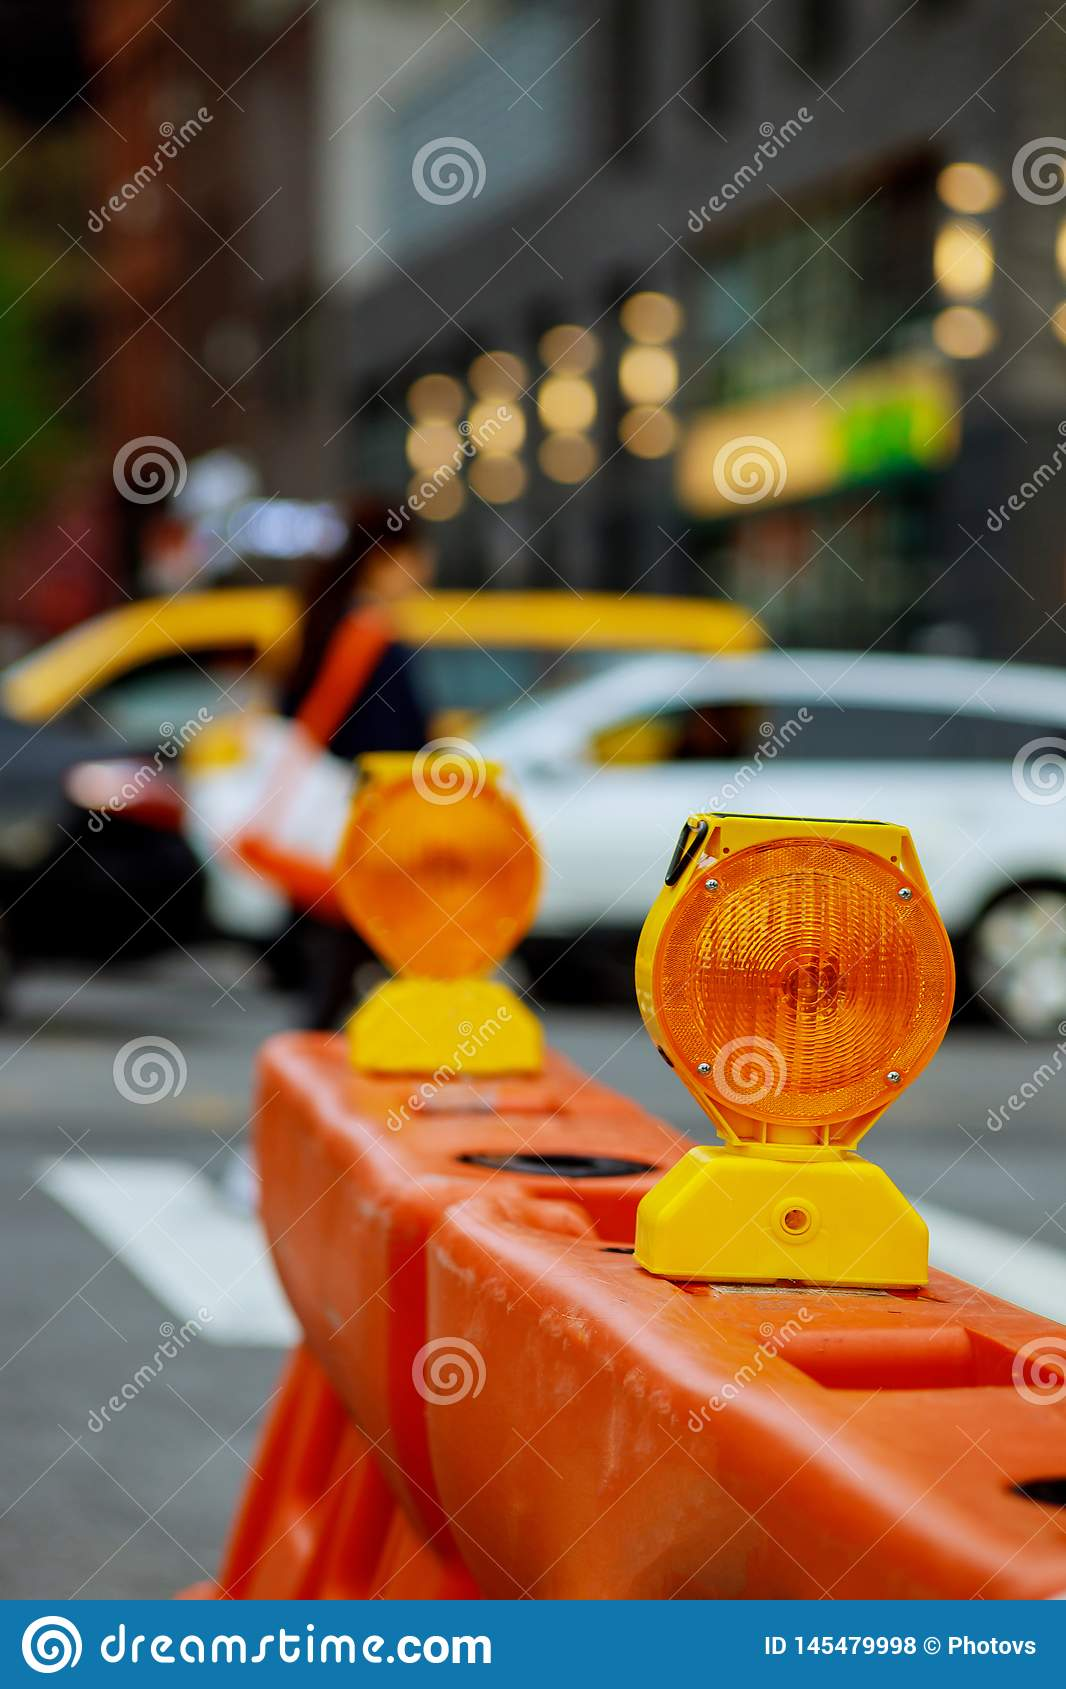 Roadblock or construction site lock with signal on a road. Red and white street barricade